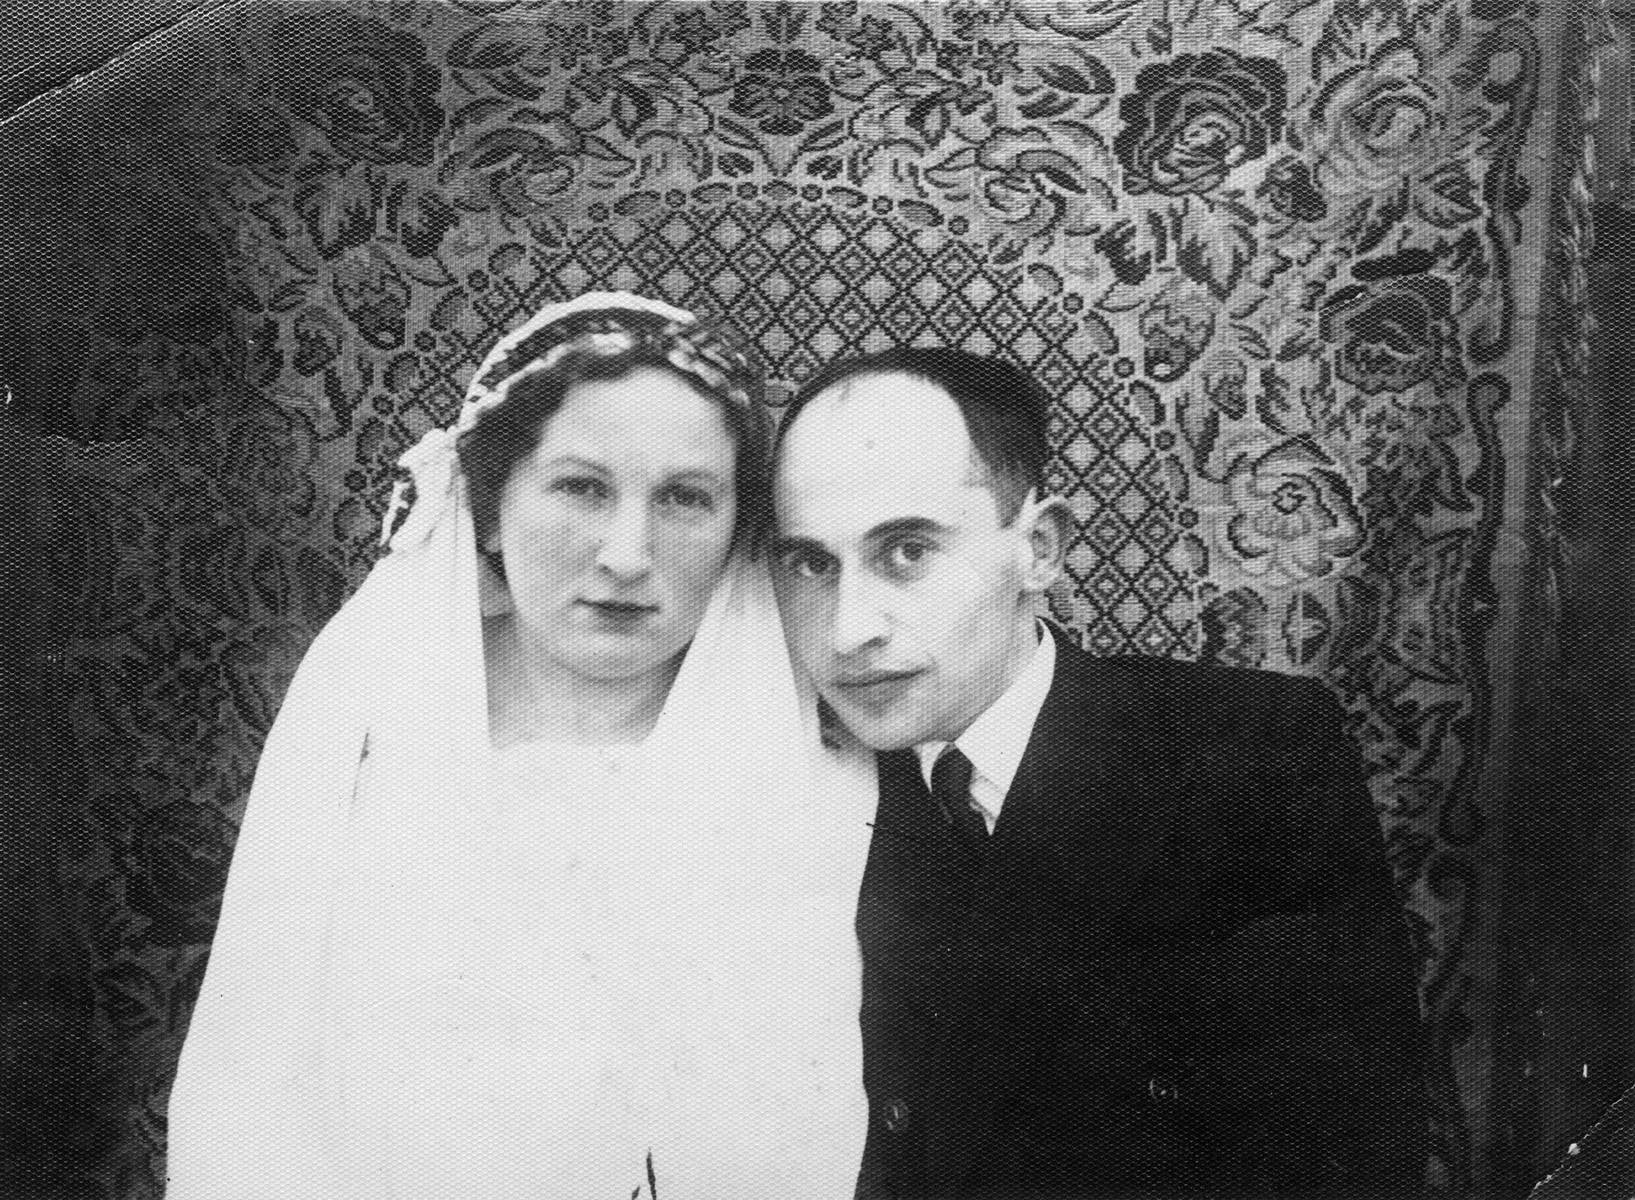 Wedding portrait of a Jewish couple in Kozowa, Poland.  Pictured are Inka Becher and Aaron Sptizbard.